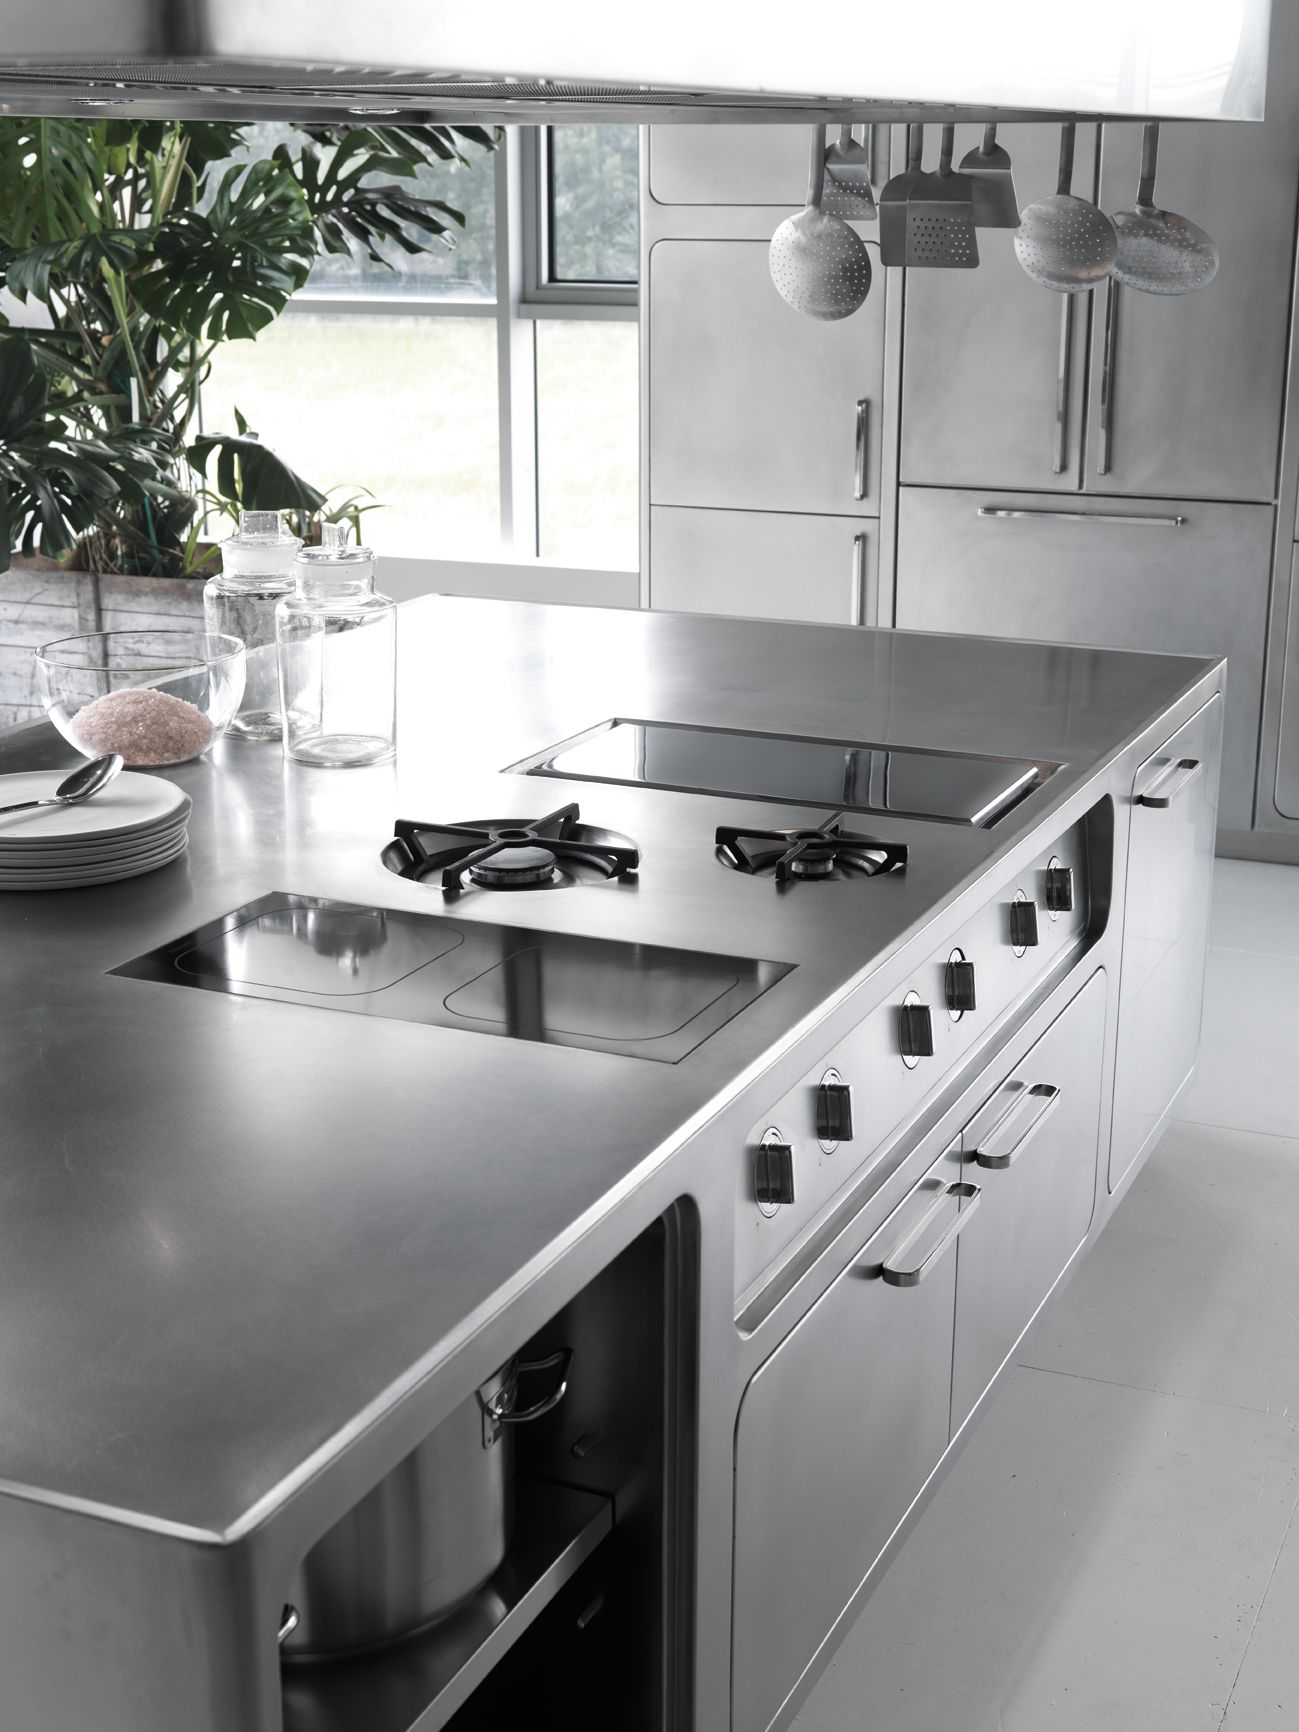 Stainless Steel Kitchens Wwwabimiscom